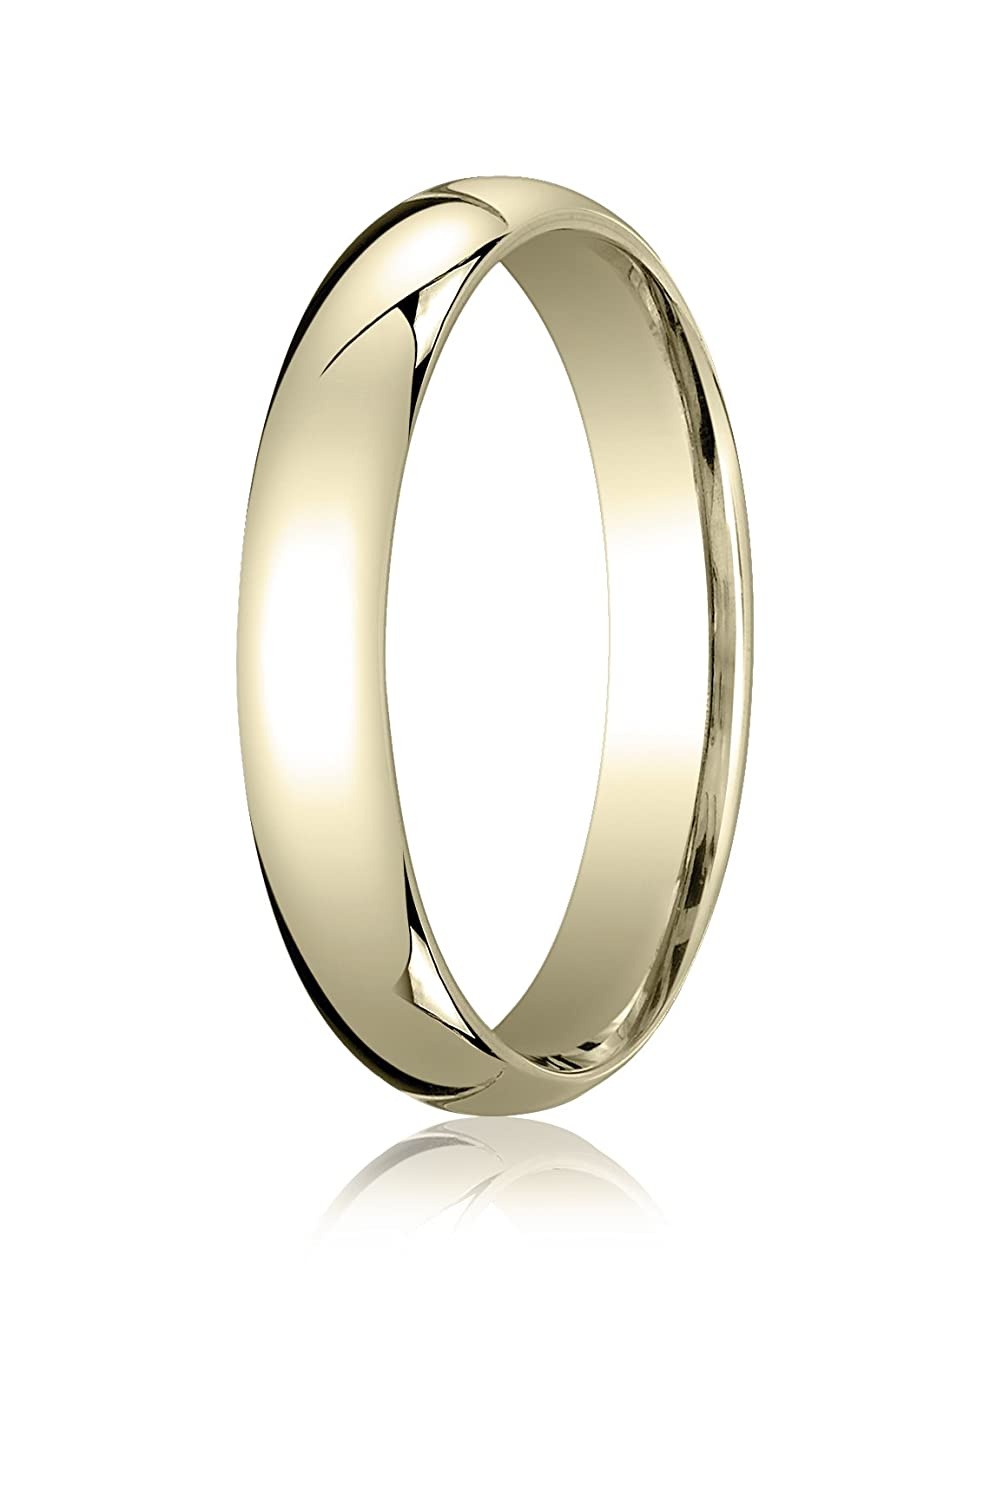 Mens 14K Yellow Gold 4mm Slightly Domed Standard Comfort Fit Wedding Band Ring